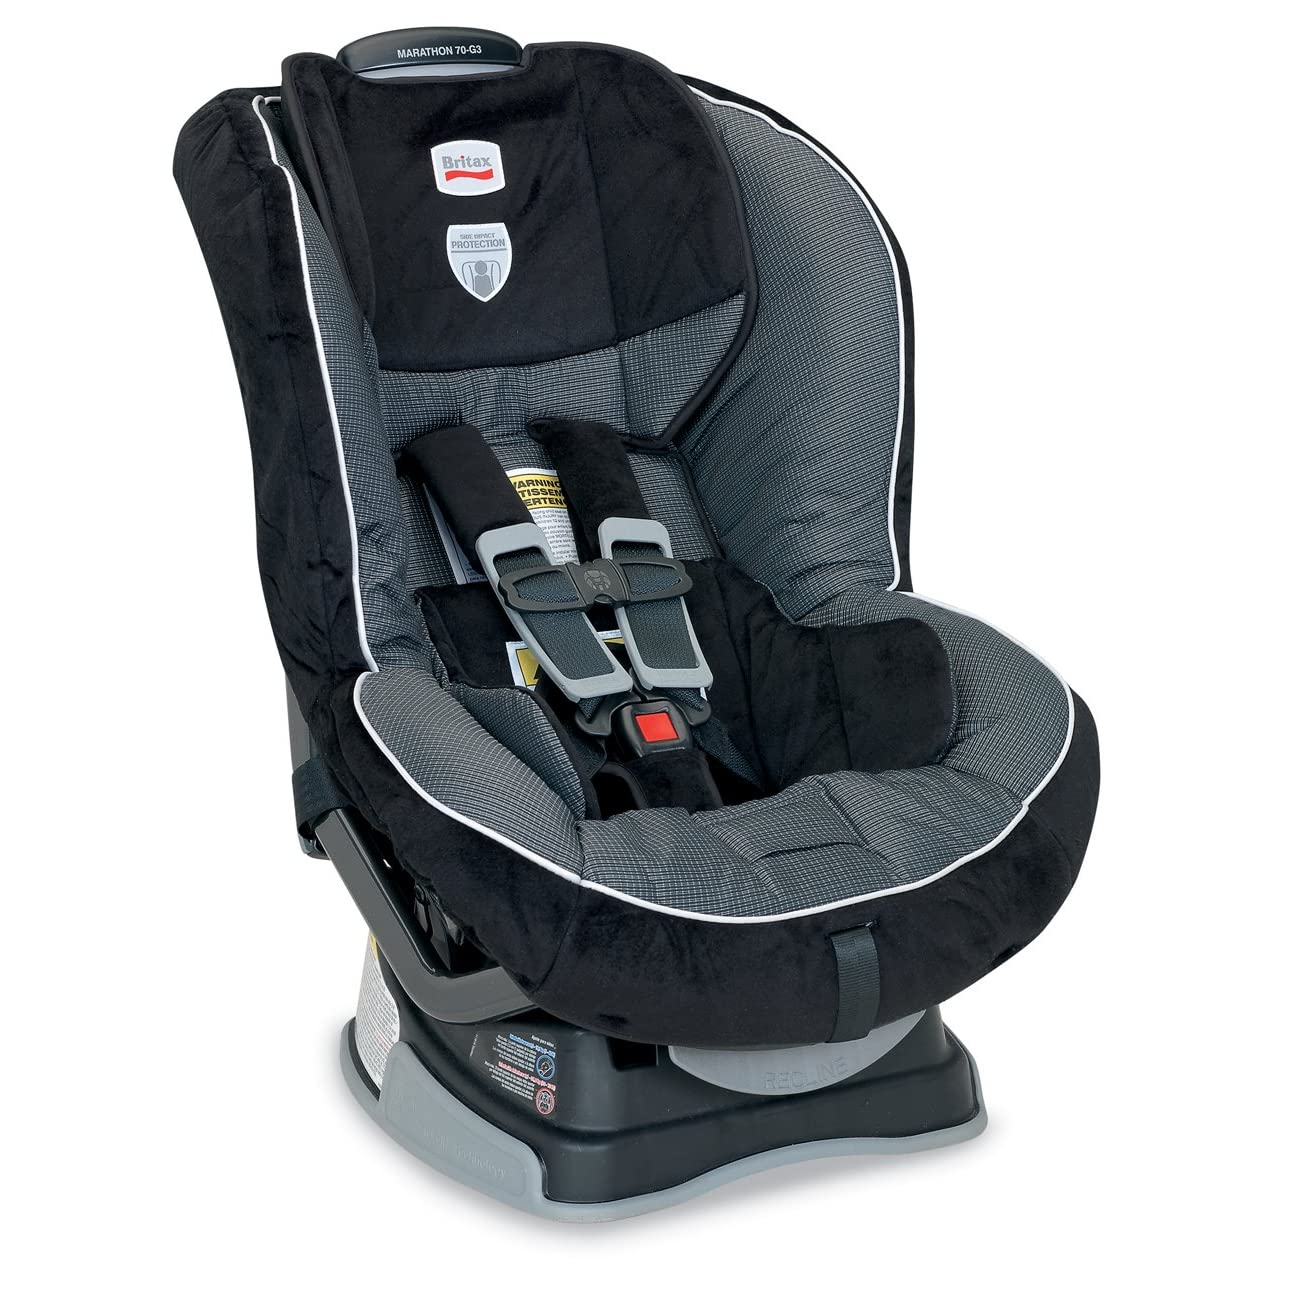 baby from above baby gear car seats strollers travel accessories. Black Bedroom Furniture Sets. Home Design Ideas